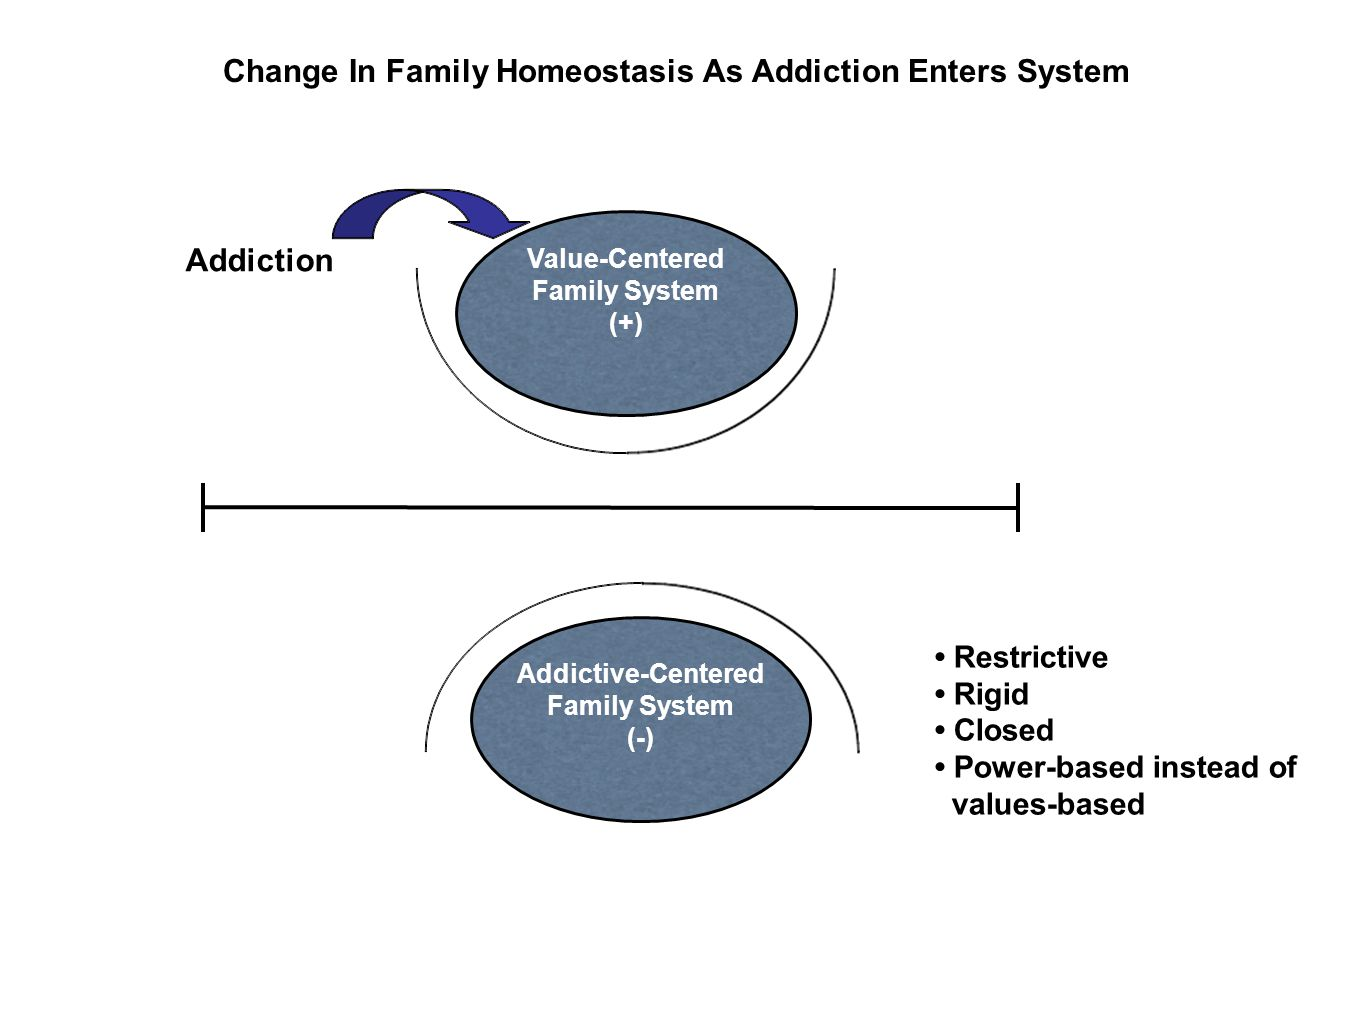 Change In Family Homeostasis As Addiction Enters System Addiction Value-Centered Family System (+) Addictive-Centered Family System (-) Restrictive Rigid Closed Power-based instead of values-based